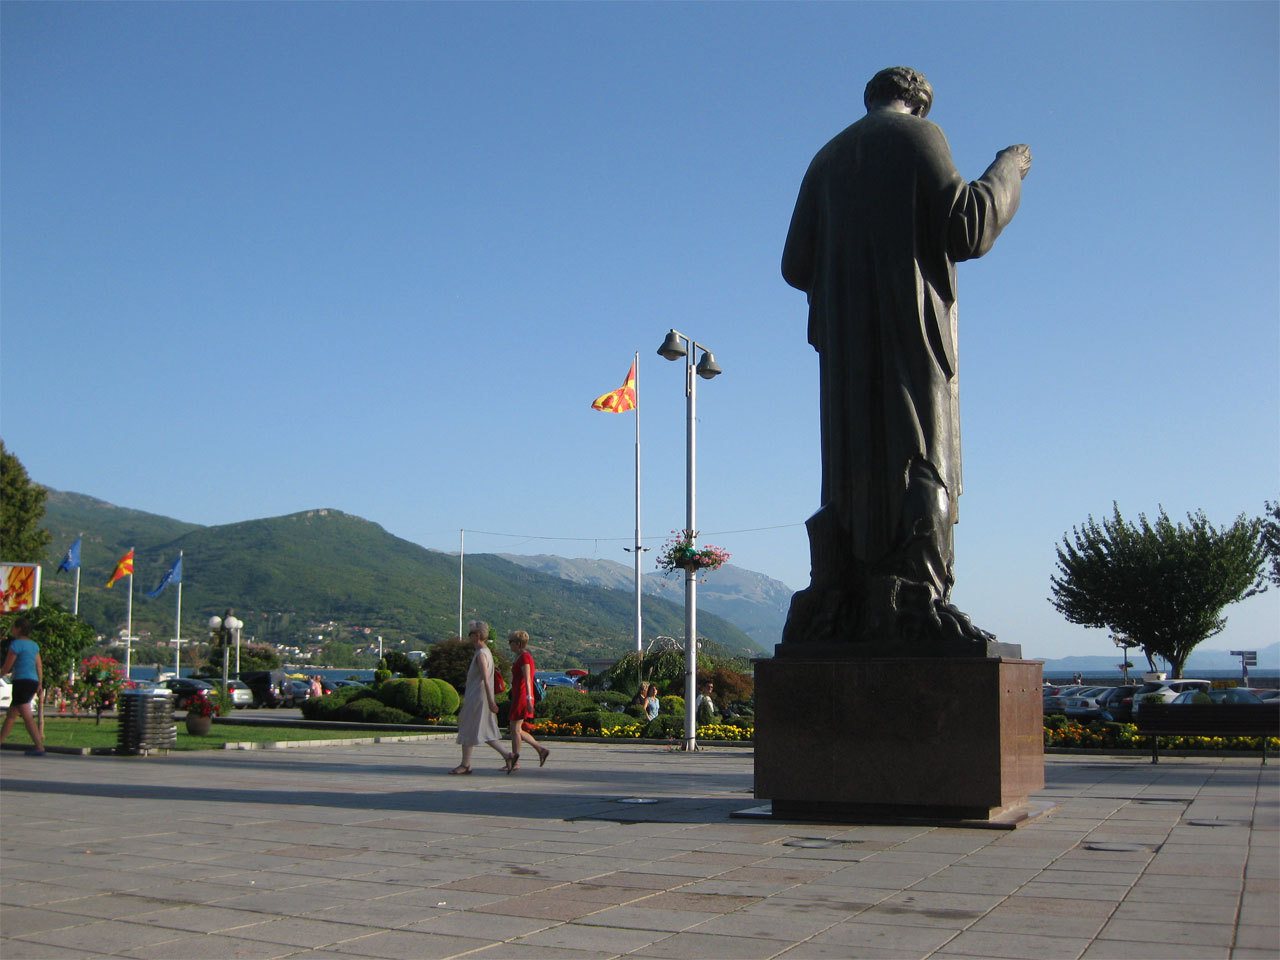 Sveti Kliment square, Ohrid, Macedonia